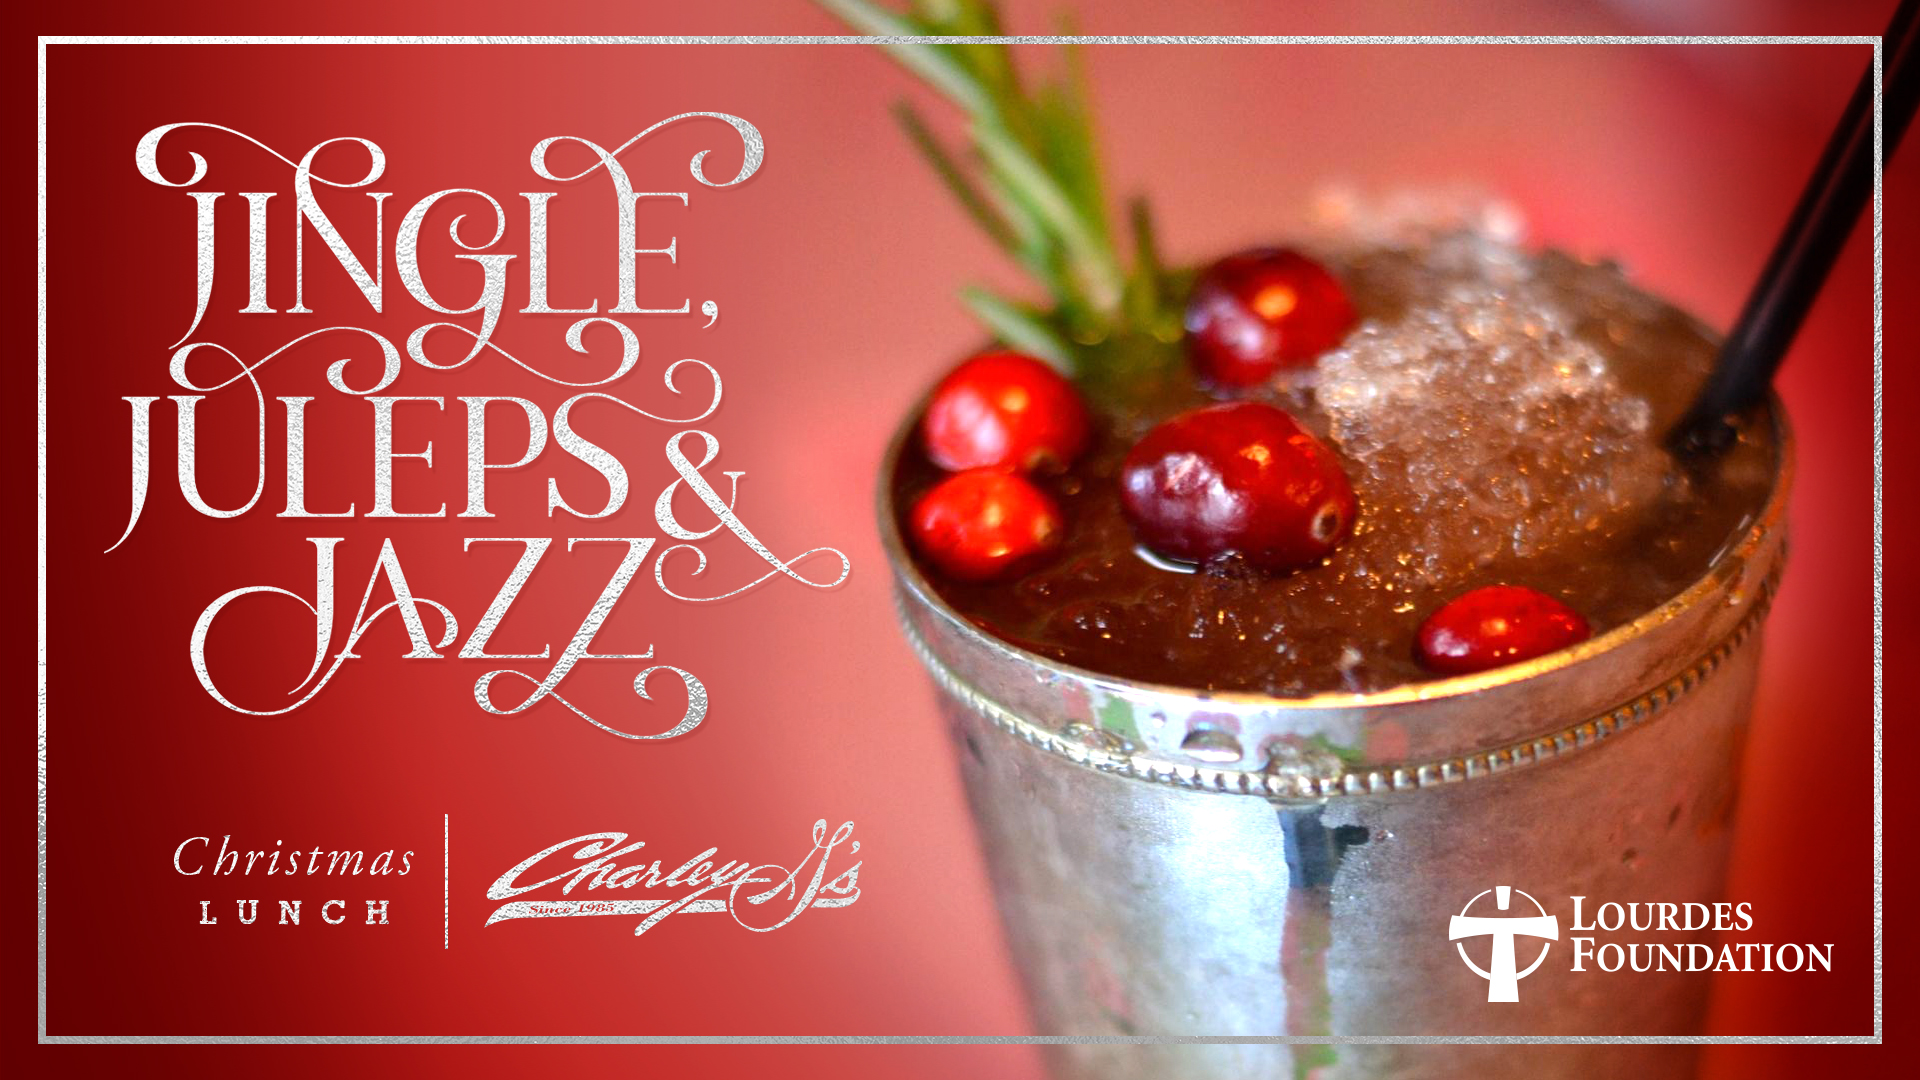 Introducing Jingle, Juleps, & Jazz!    Friday, December 7, 2018    Charley G's 11:00 am - 3:00 pm     Jazz up your holidays at this festive lunch brought to you by Lourdes Foundation.  Your 3-course lunch prepared by the culinary masters at Charley G's will include a starting signature cocktail, Jingle Julep, and complimentary Kris Kringles, cranberry Prosecco fizz. Cash bar available.  Live musical entertainment, a second line and Santa help to keep the fun going through the afternoon!  Ticket sales help support Lourdes Foundation and its initiatives that touch those most in need throughout Acadiana.  Get your table today!